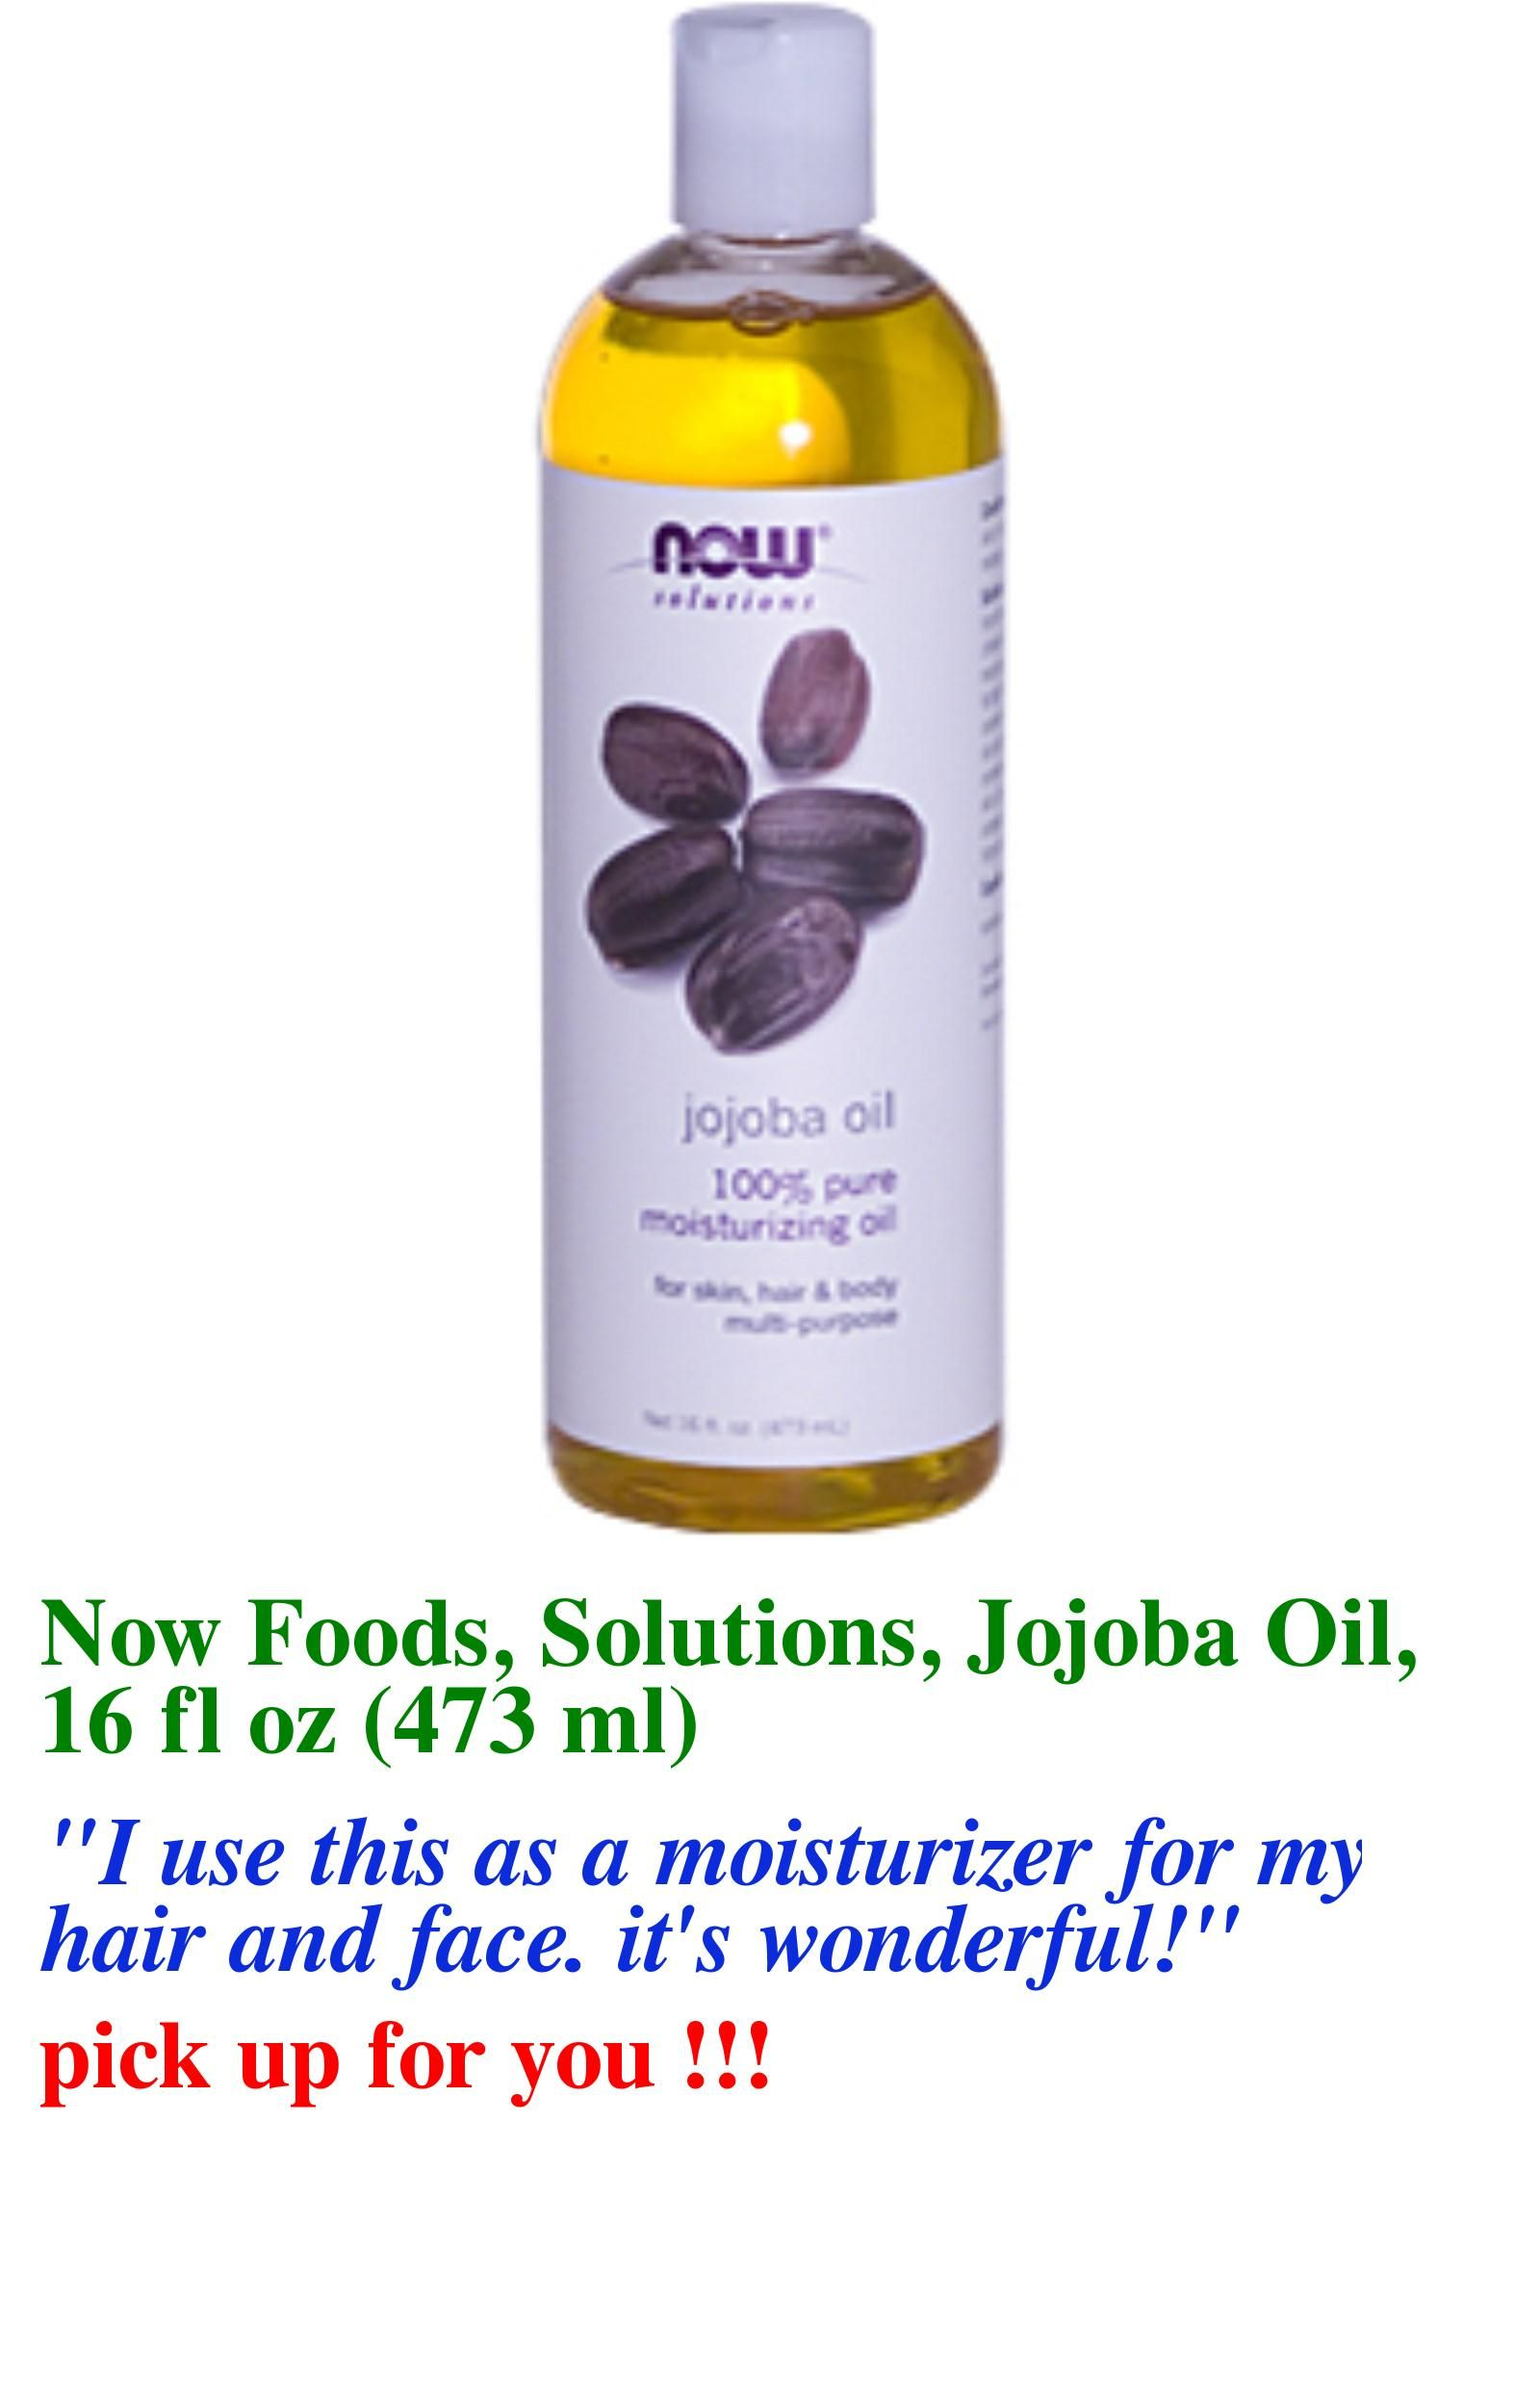 bath and beauty discount coupon code:JWH658,$10 OFF  iHerb Now Foods, Solutions, Jojoba Oil, 16 fl oz (473 ml) cod liver oil beauty benefits